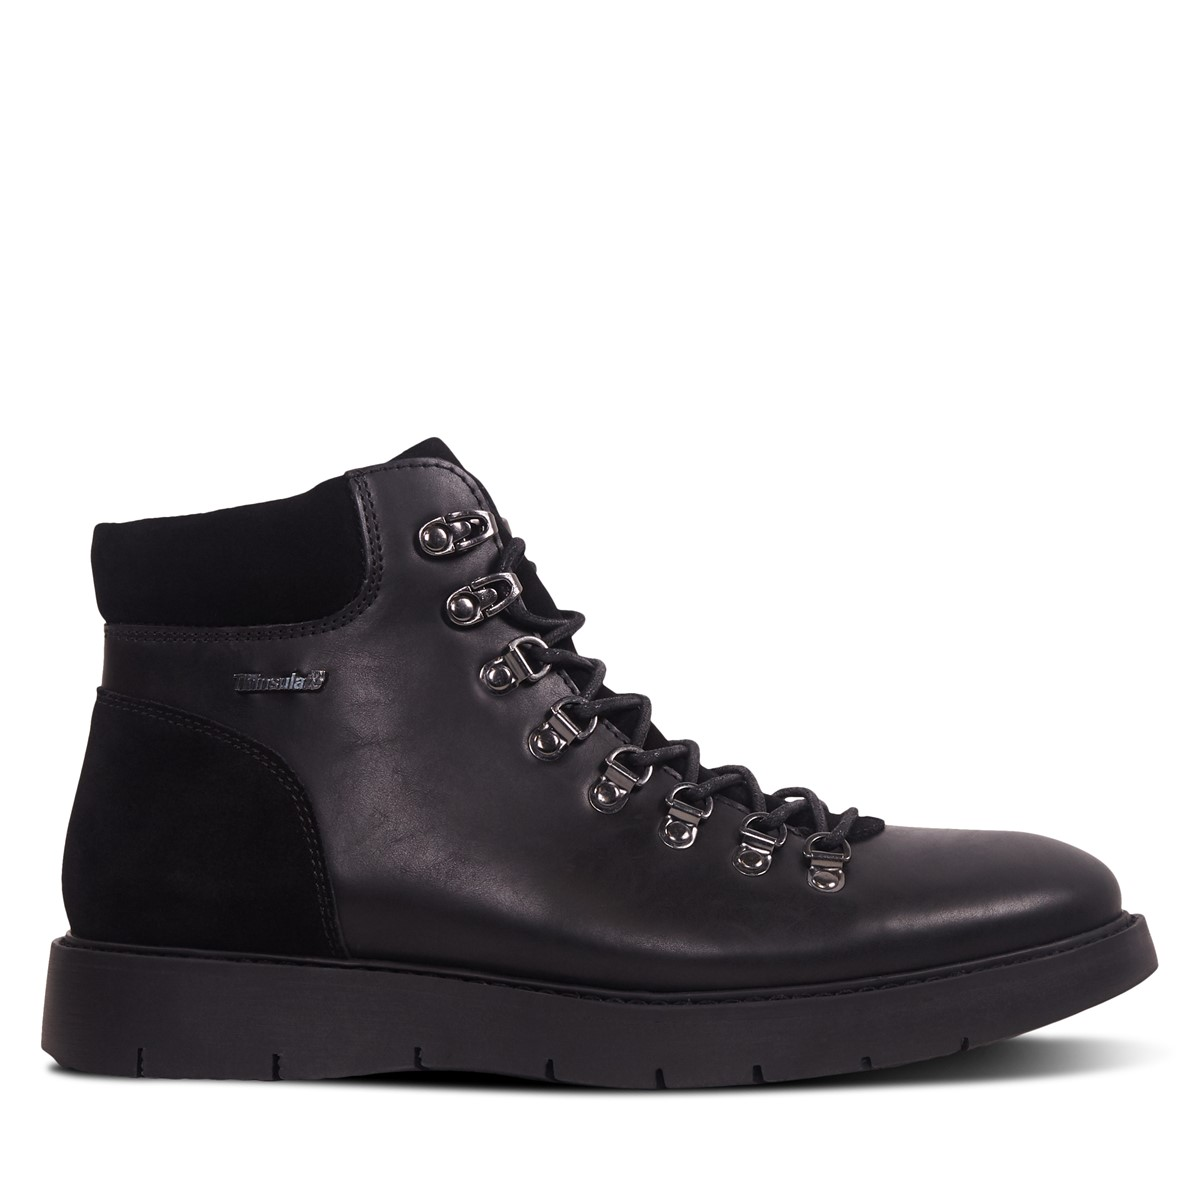 Men's Liam Lace-up Boots in Black